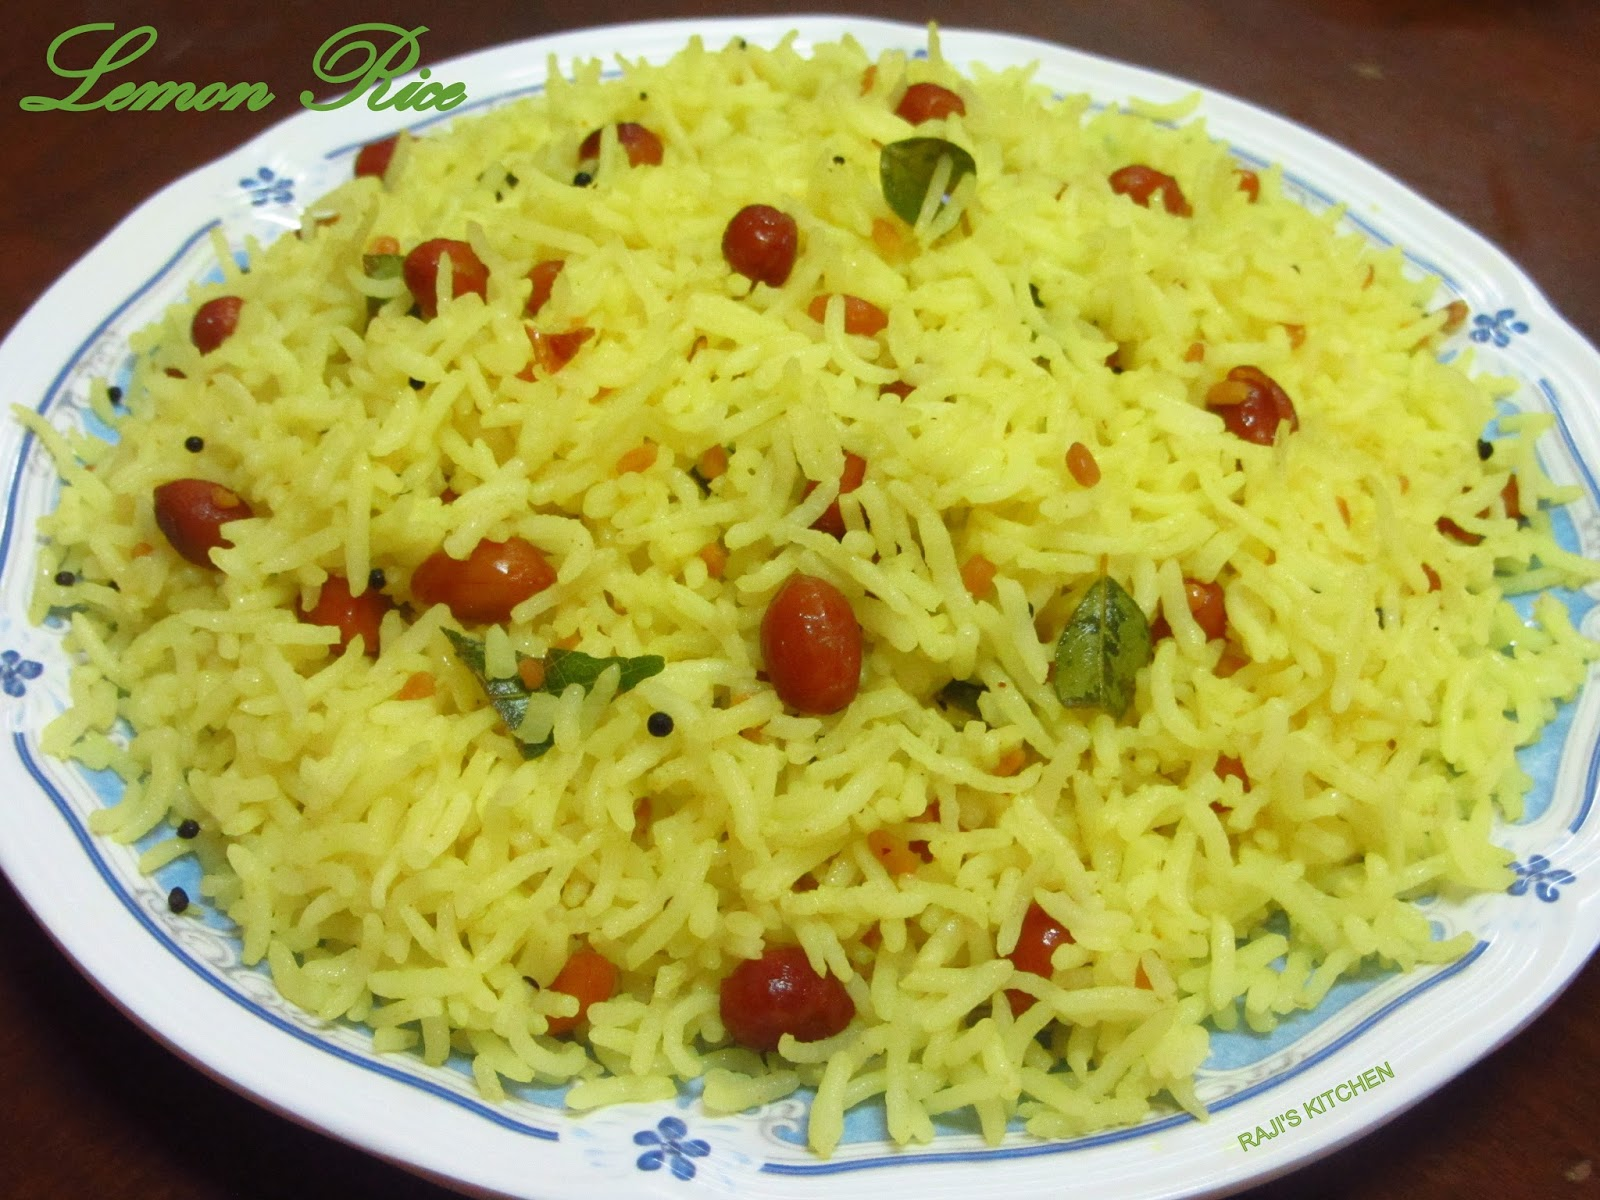 Lemon Rice Hd Images